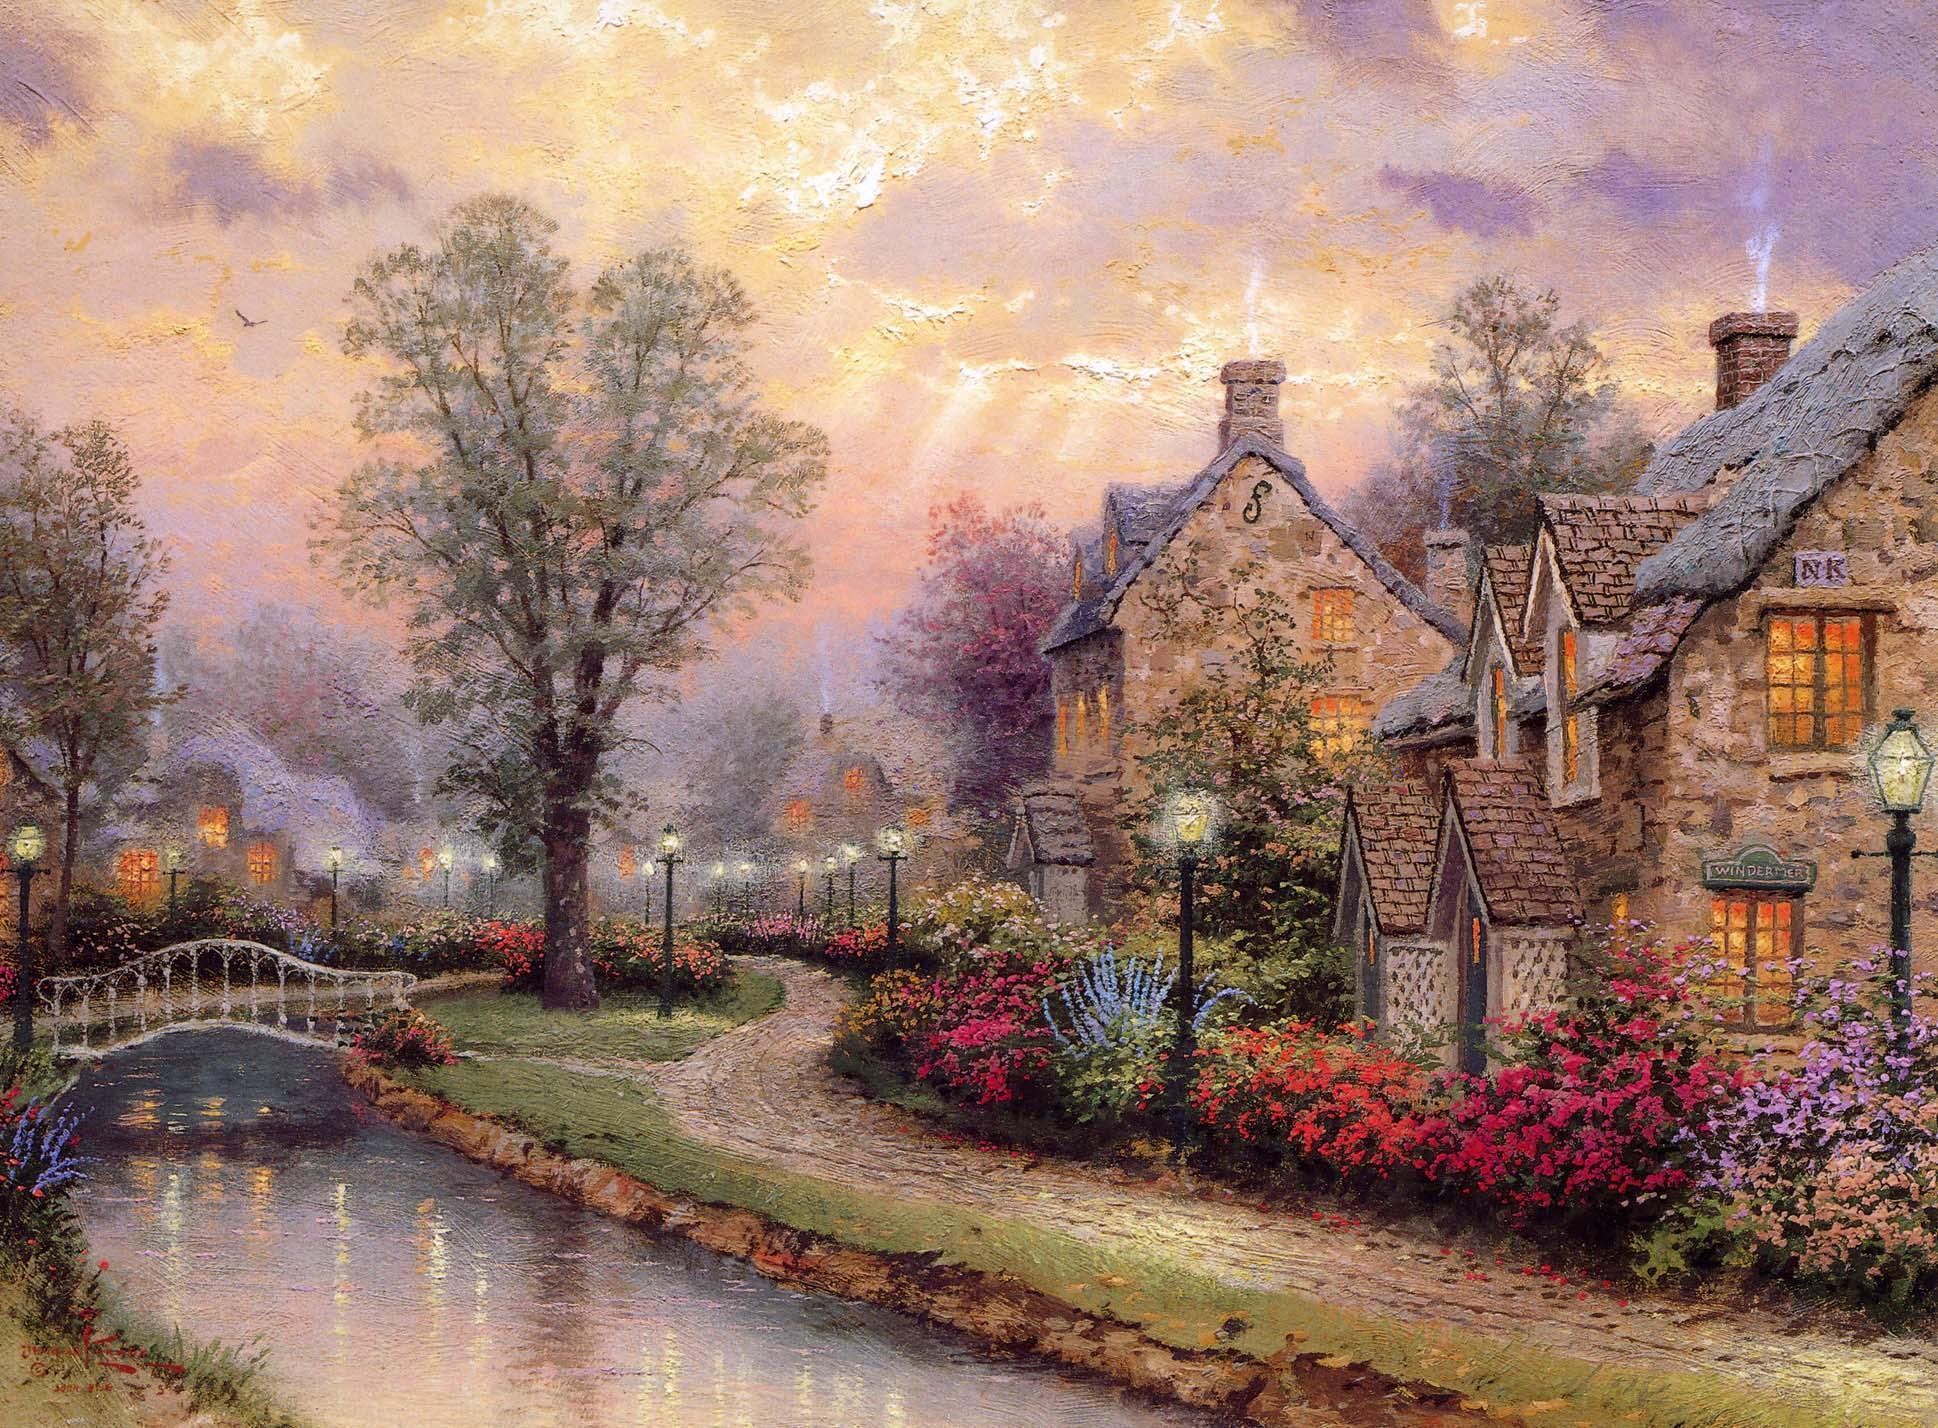 Free Thomas Kinkade Wallpapers For Desktop Wallpaper Cave